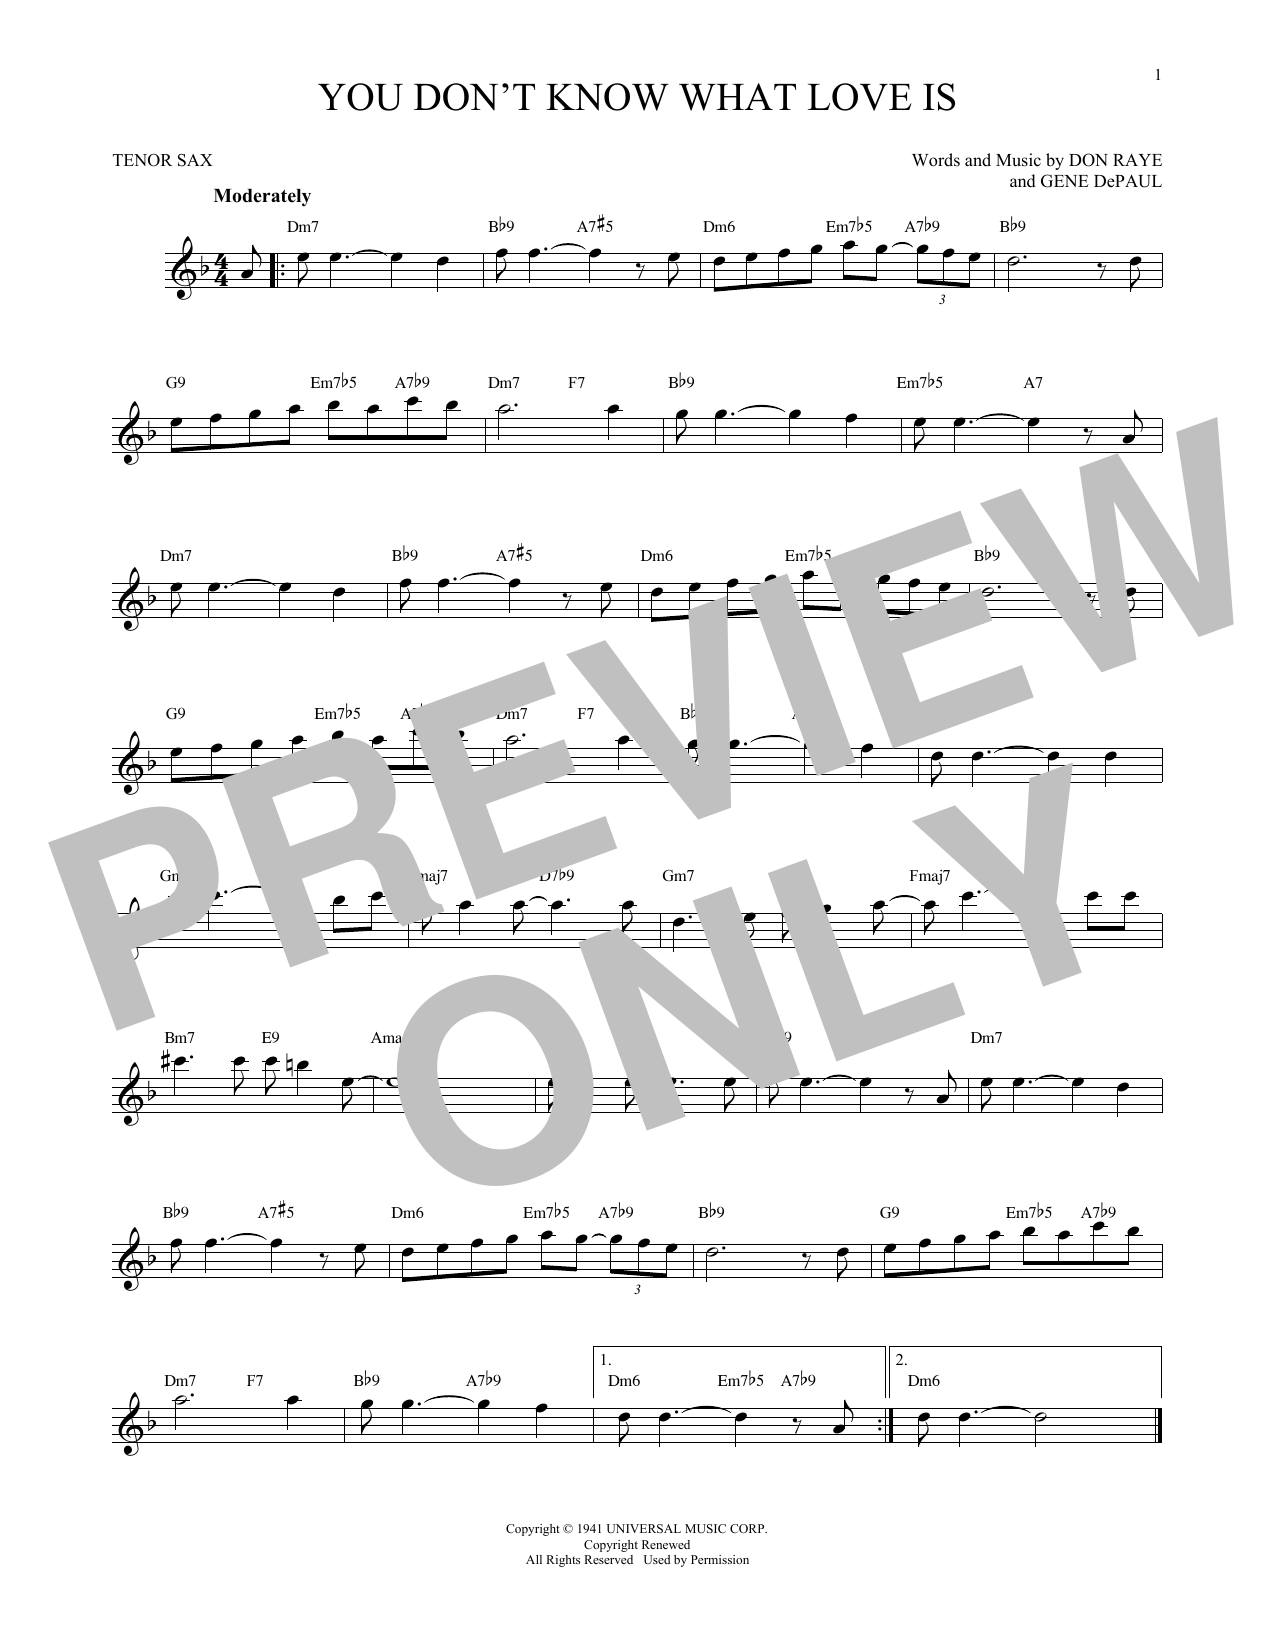 Don Raye You Don't Know What Love Is sheet music notes and chords. Download Printable PDF.